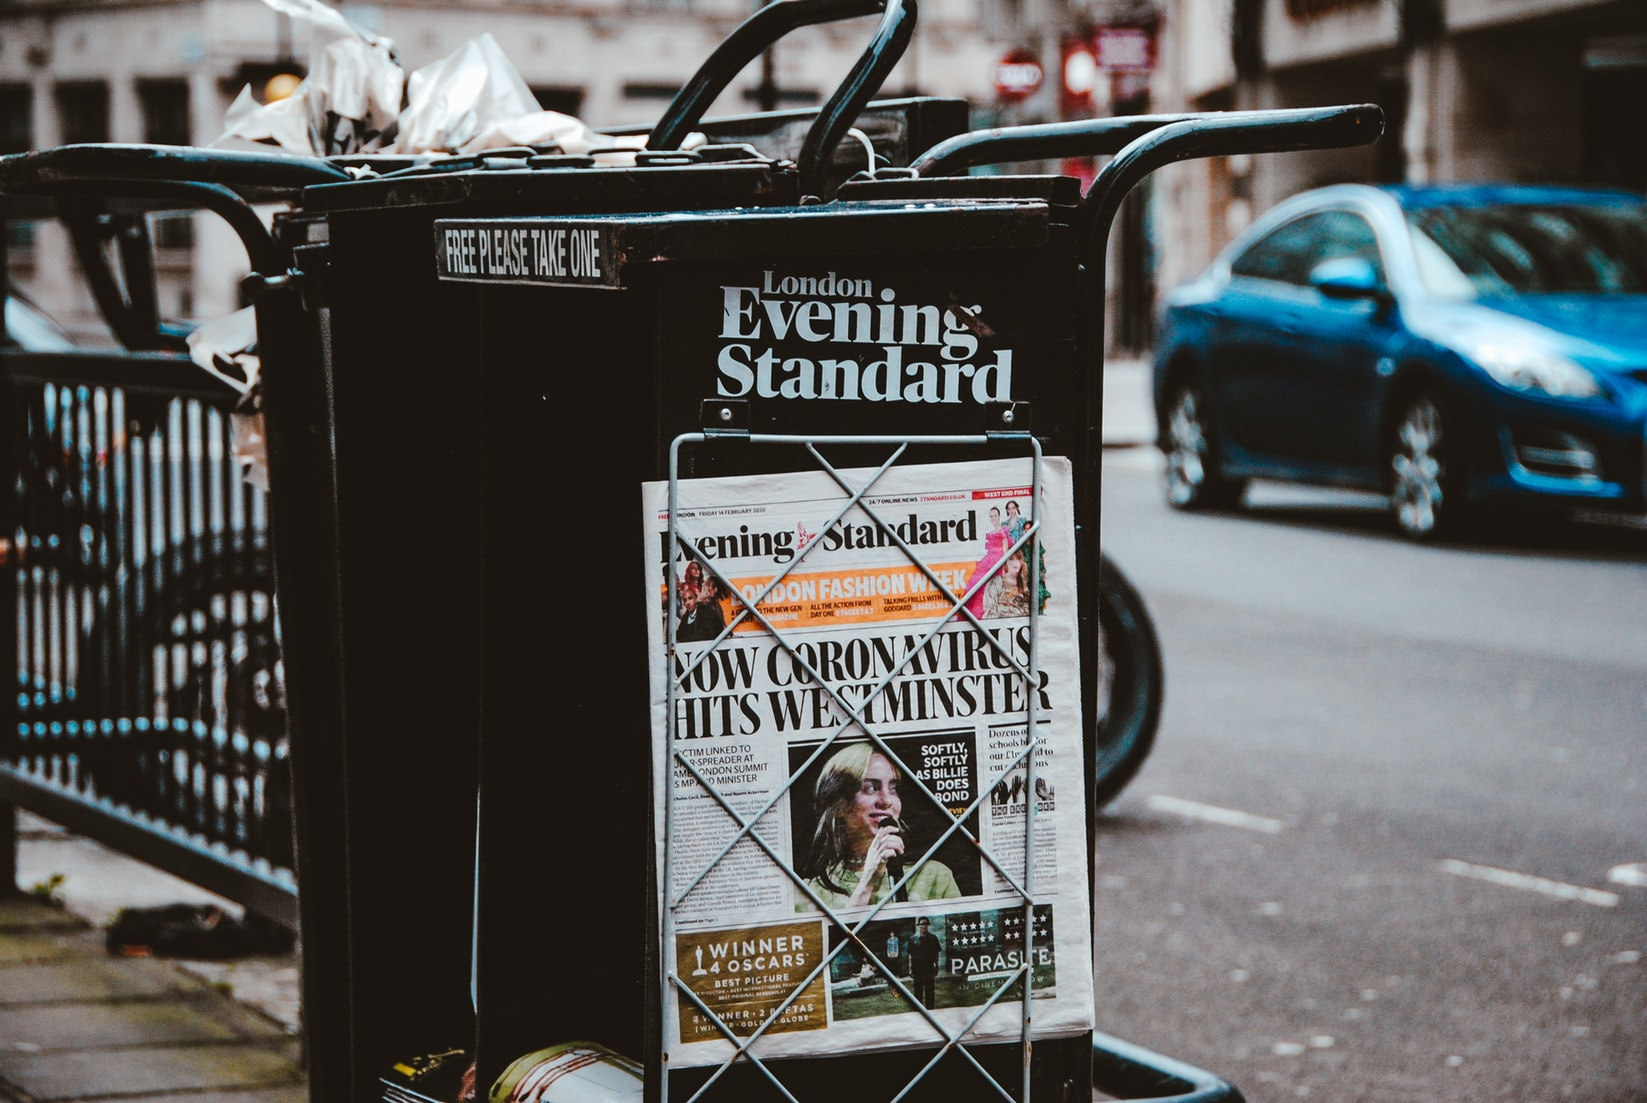 London evening standard newspaper with coronavirus headlines on sidewalk